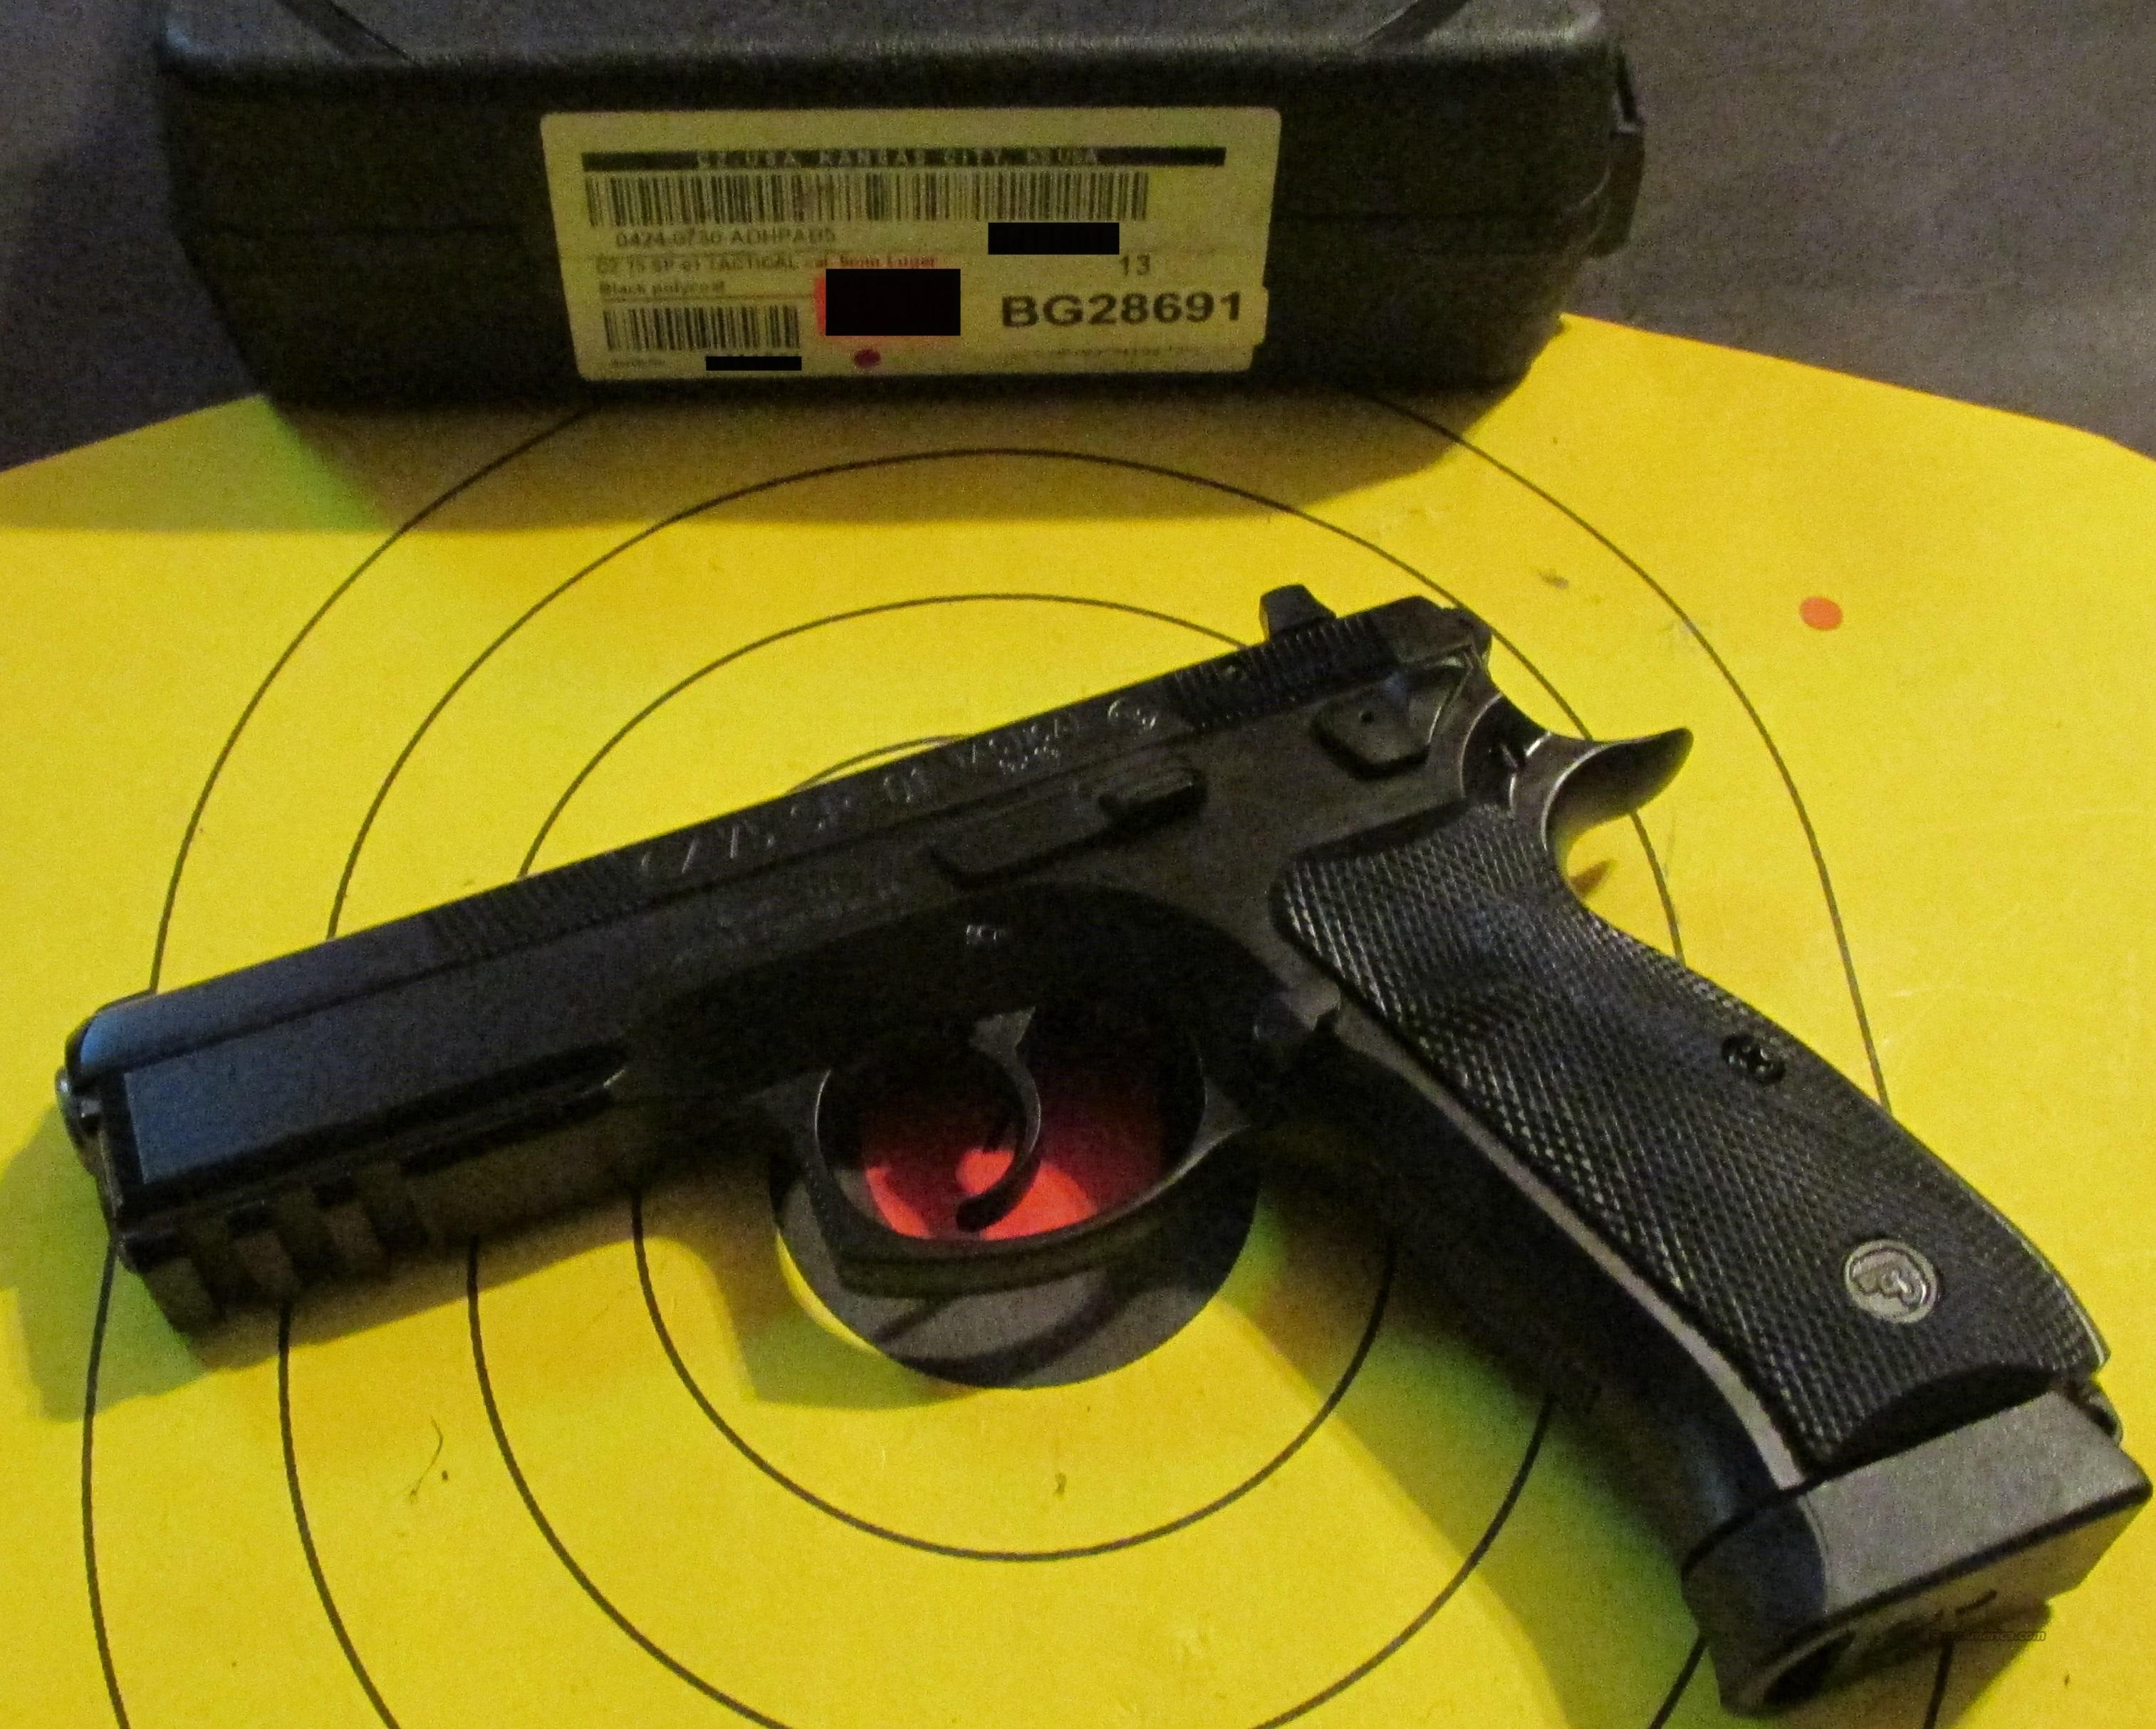 CZ-USA CZ-75 SP-01 BD TACTICAL 40 S&W  Guns > Pistols > CZ Pistols